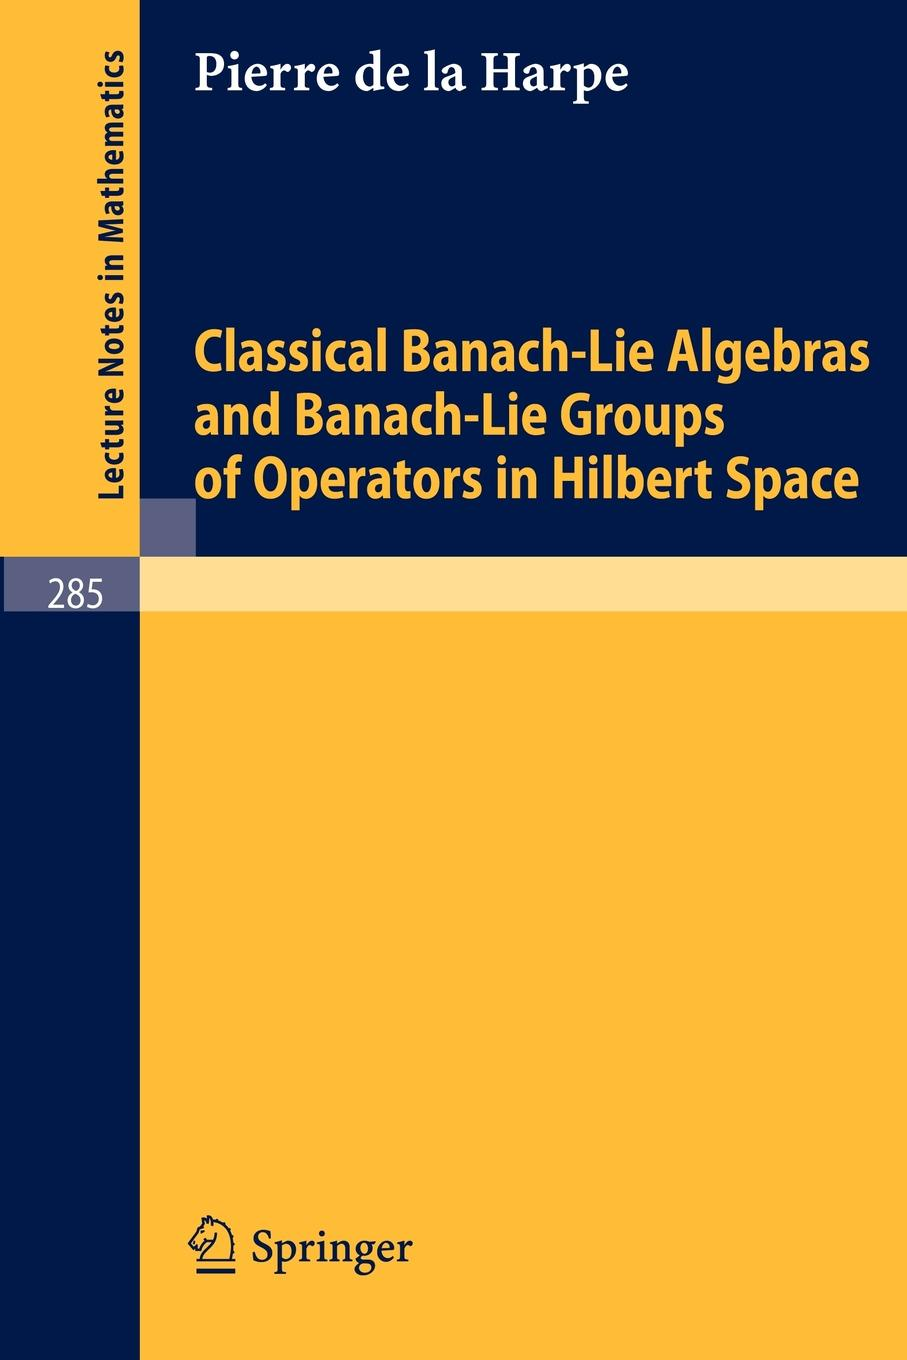 P. De La Harpe Classical Banach-Lie Algebras and Banach-Lie Groups of Operators in Hilbert Space цены